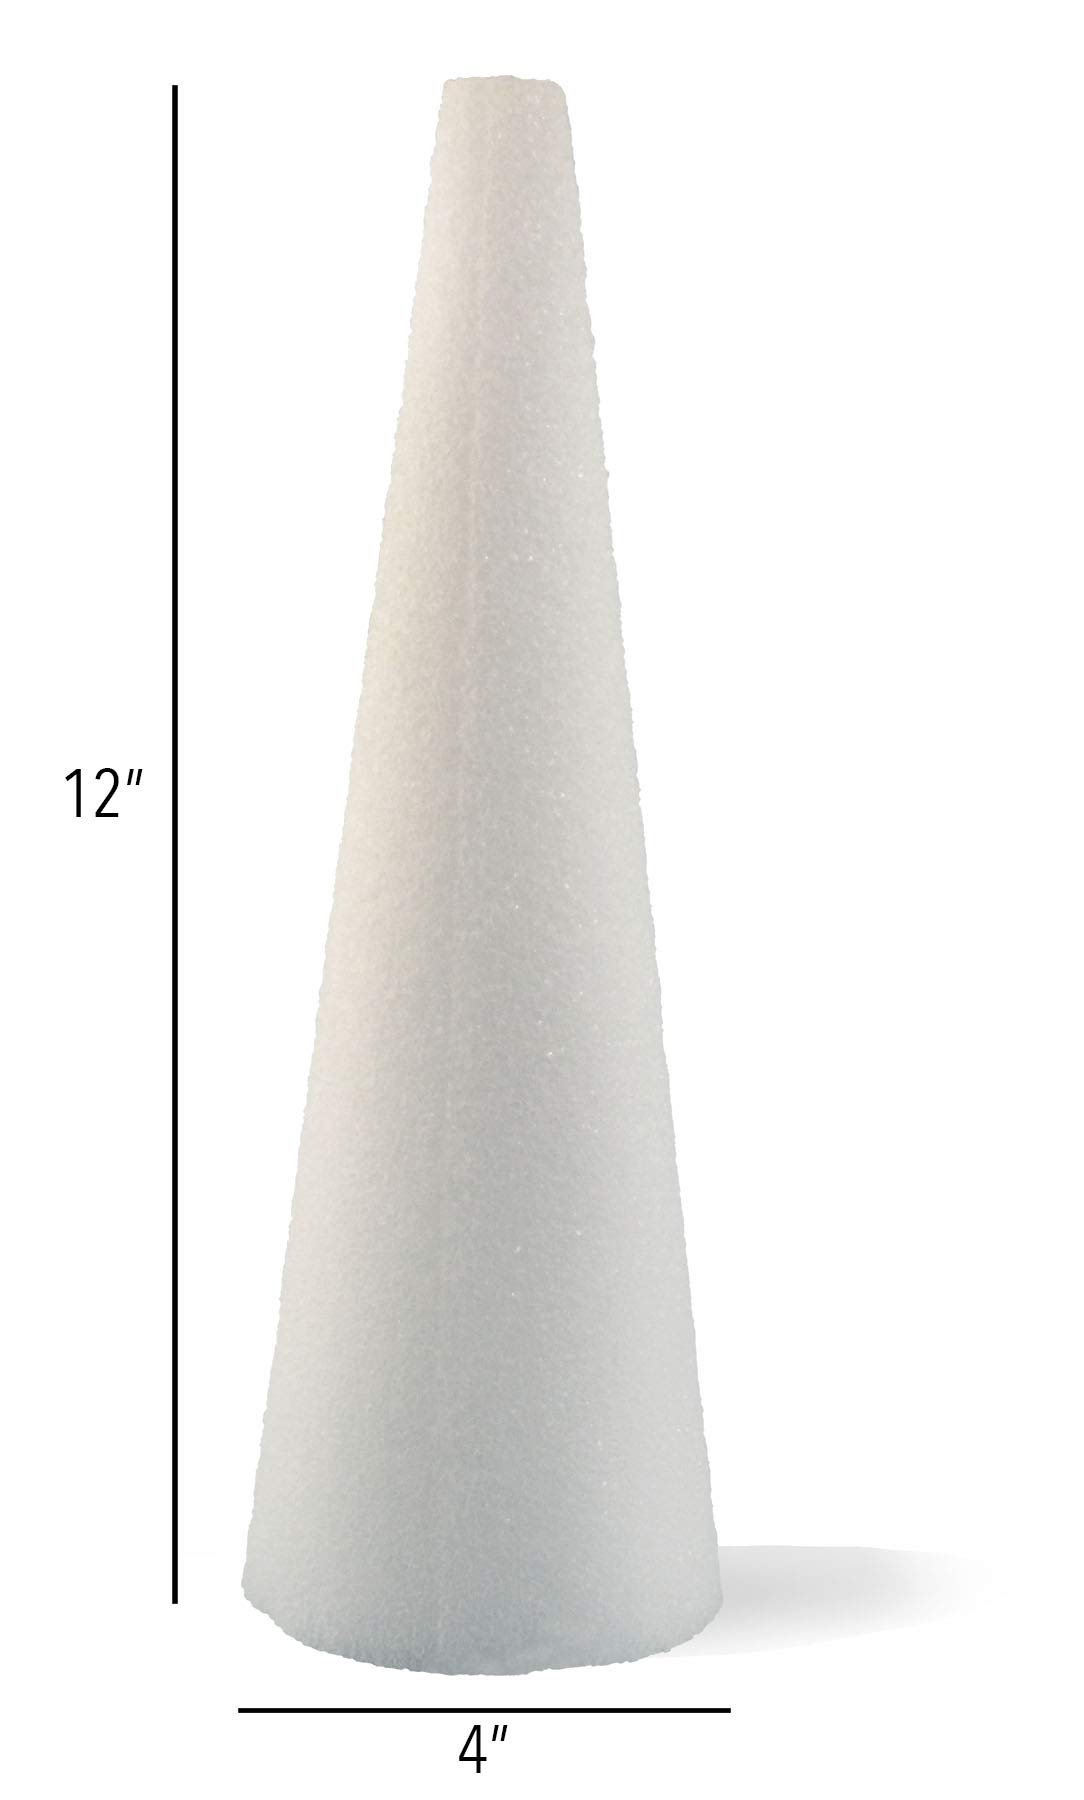 Hygloss Products Styrofoam Cones - 12 Inch White Cones for Floral Arrangements and Projects, 6 Pack